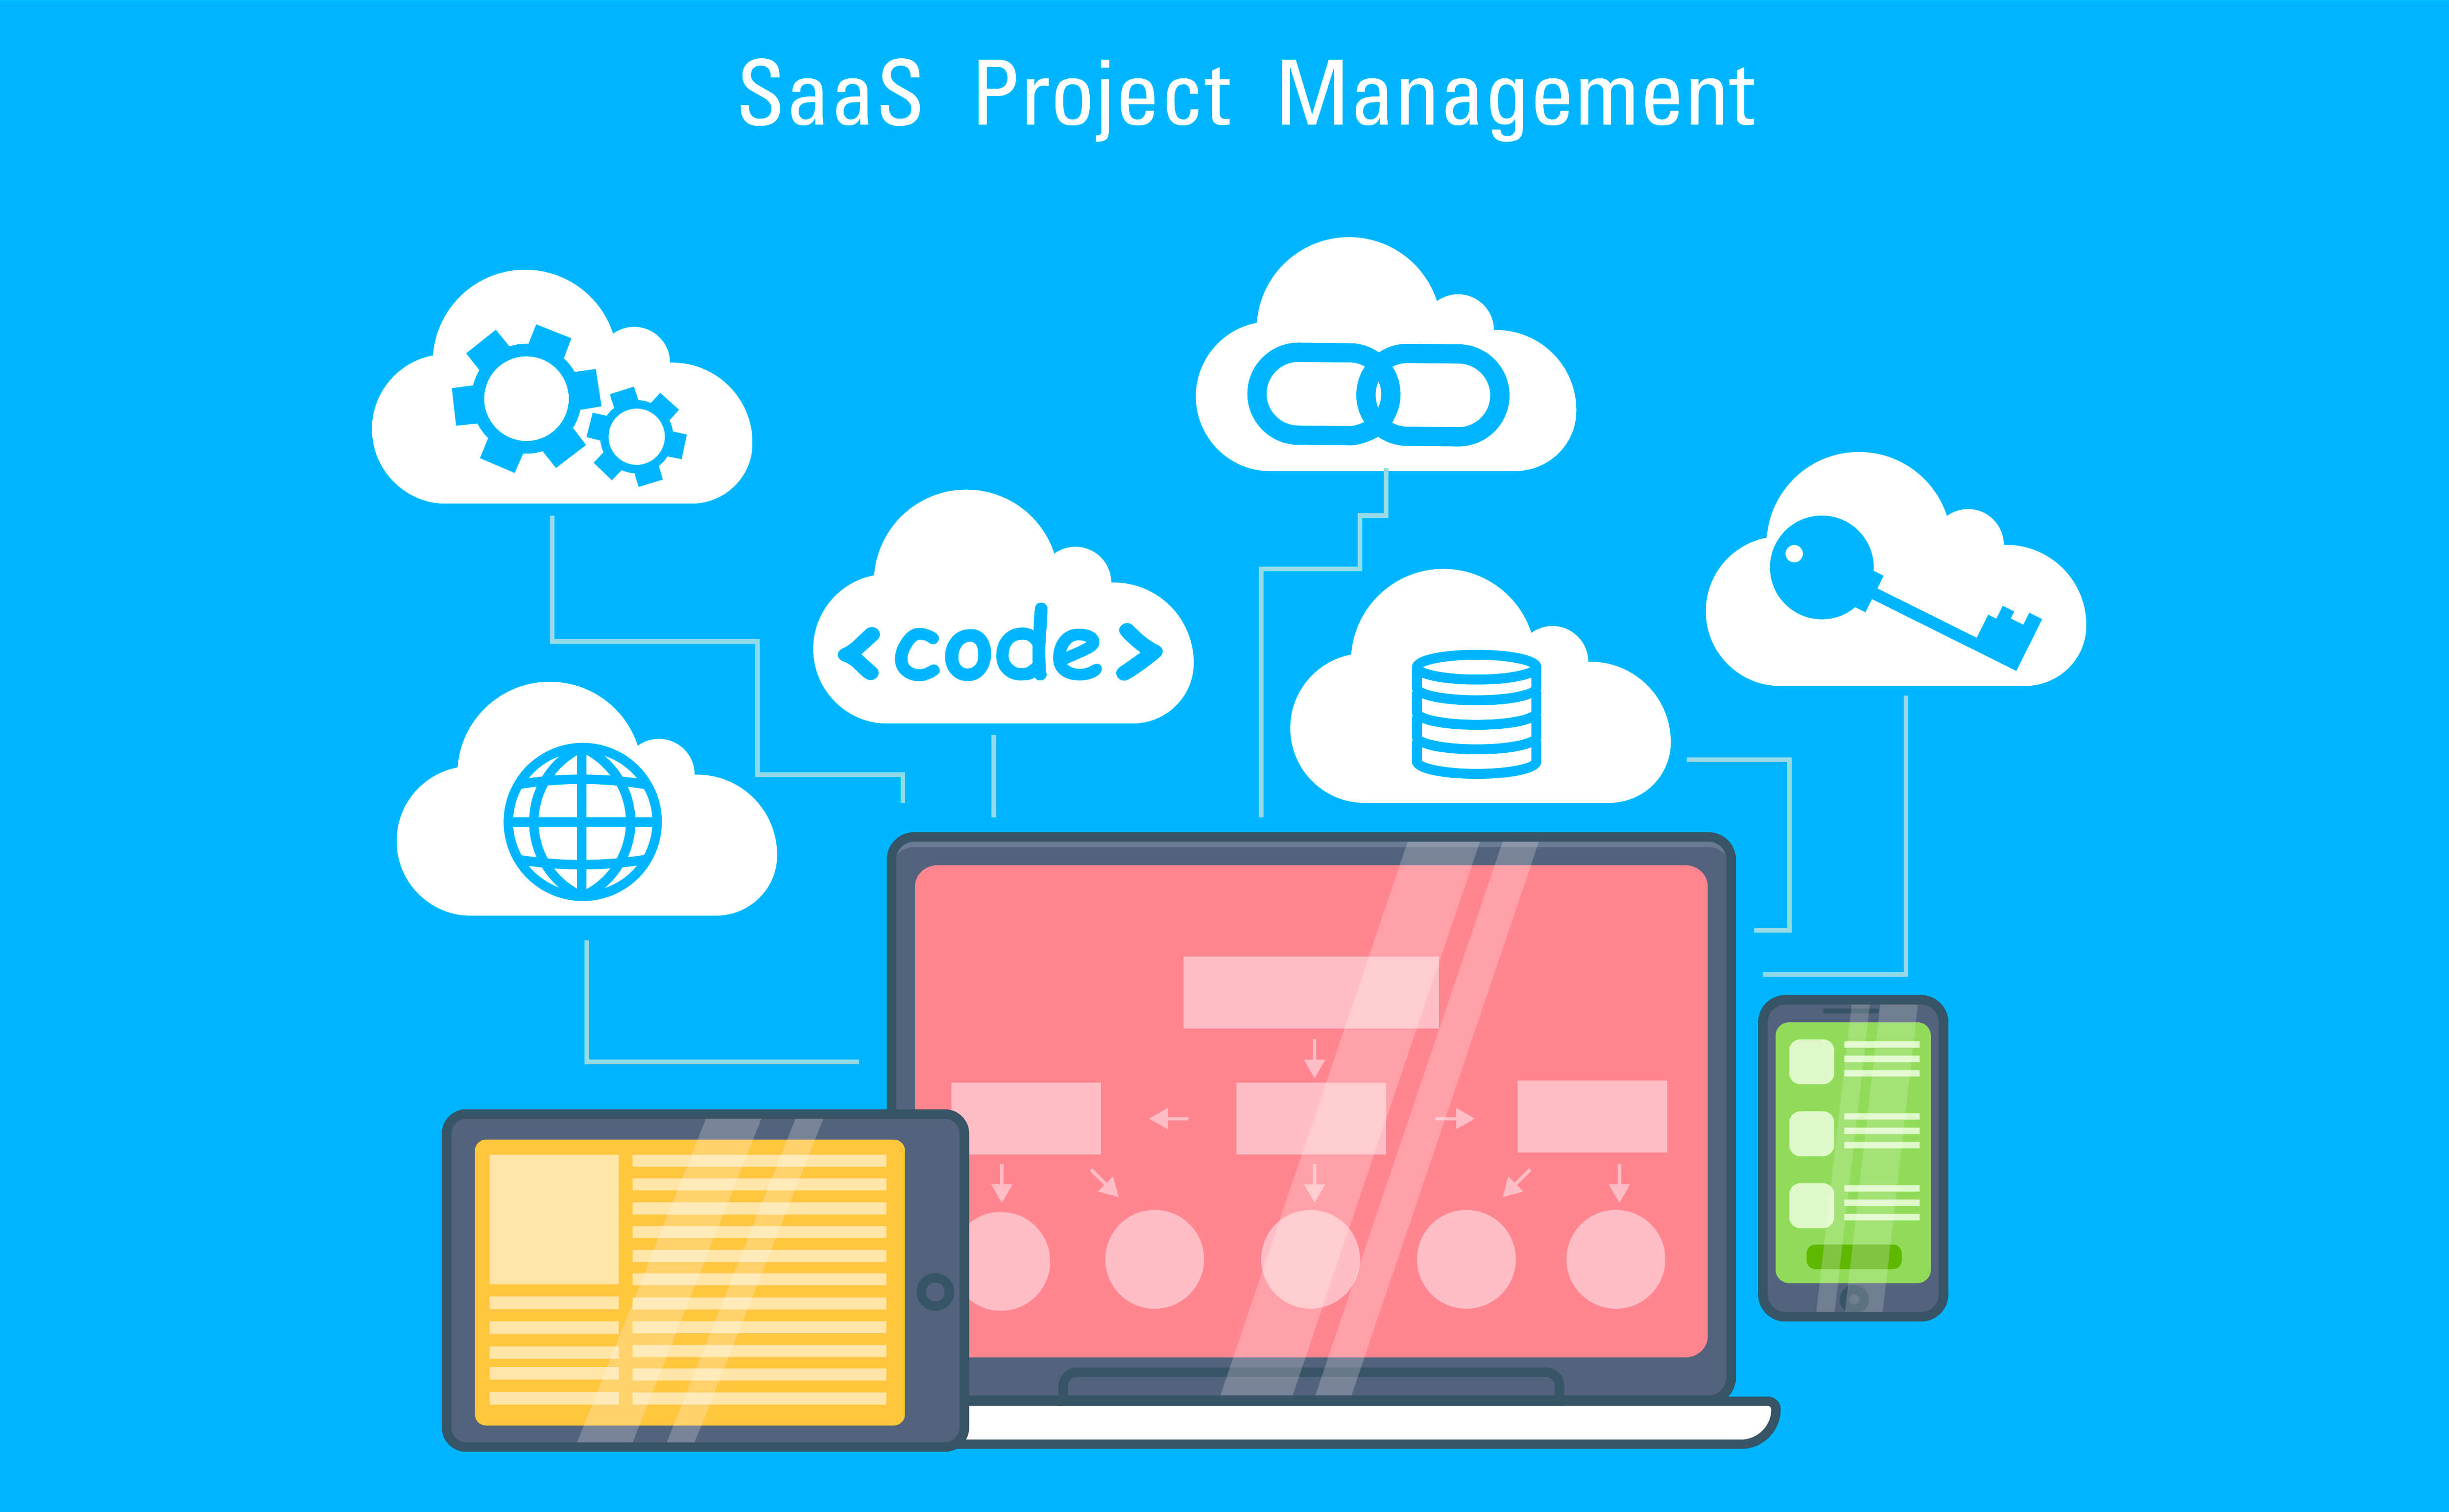 The benefits and the disadvantages of moving in to Information technology systems based on Cloud  SaaS –  or why should SMB's consider embracing cloud technologies